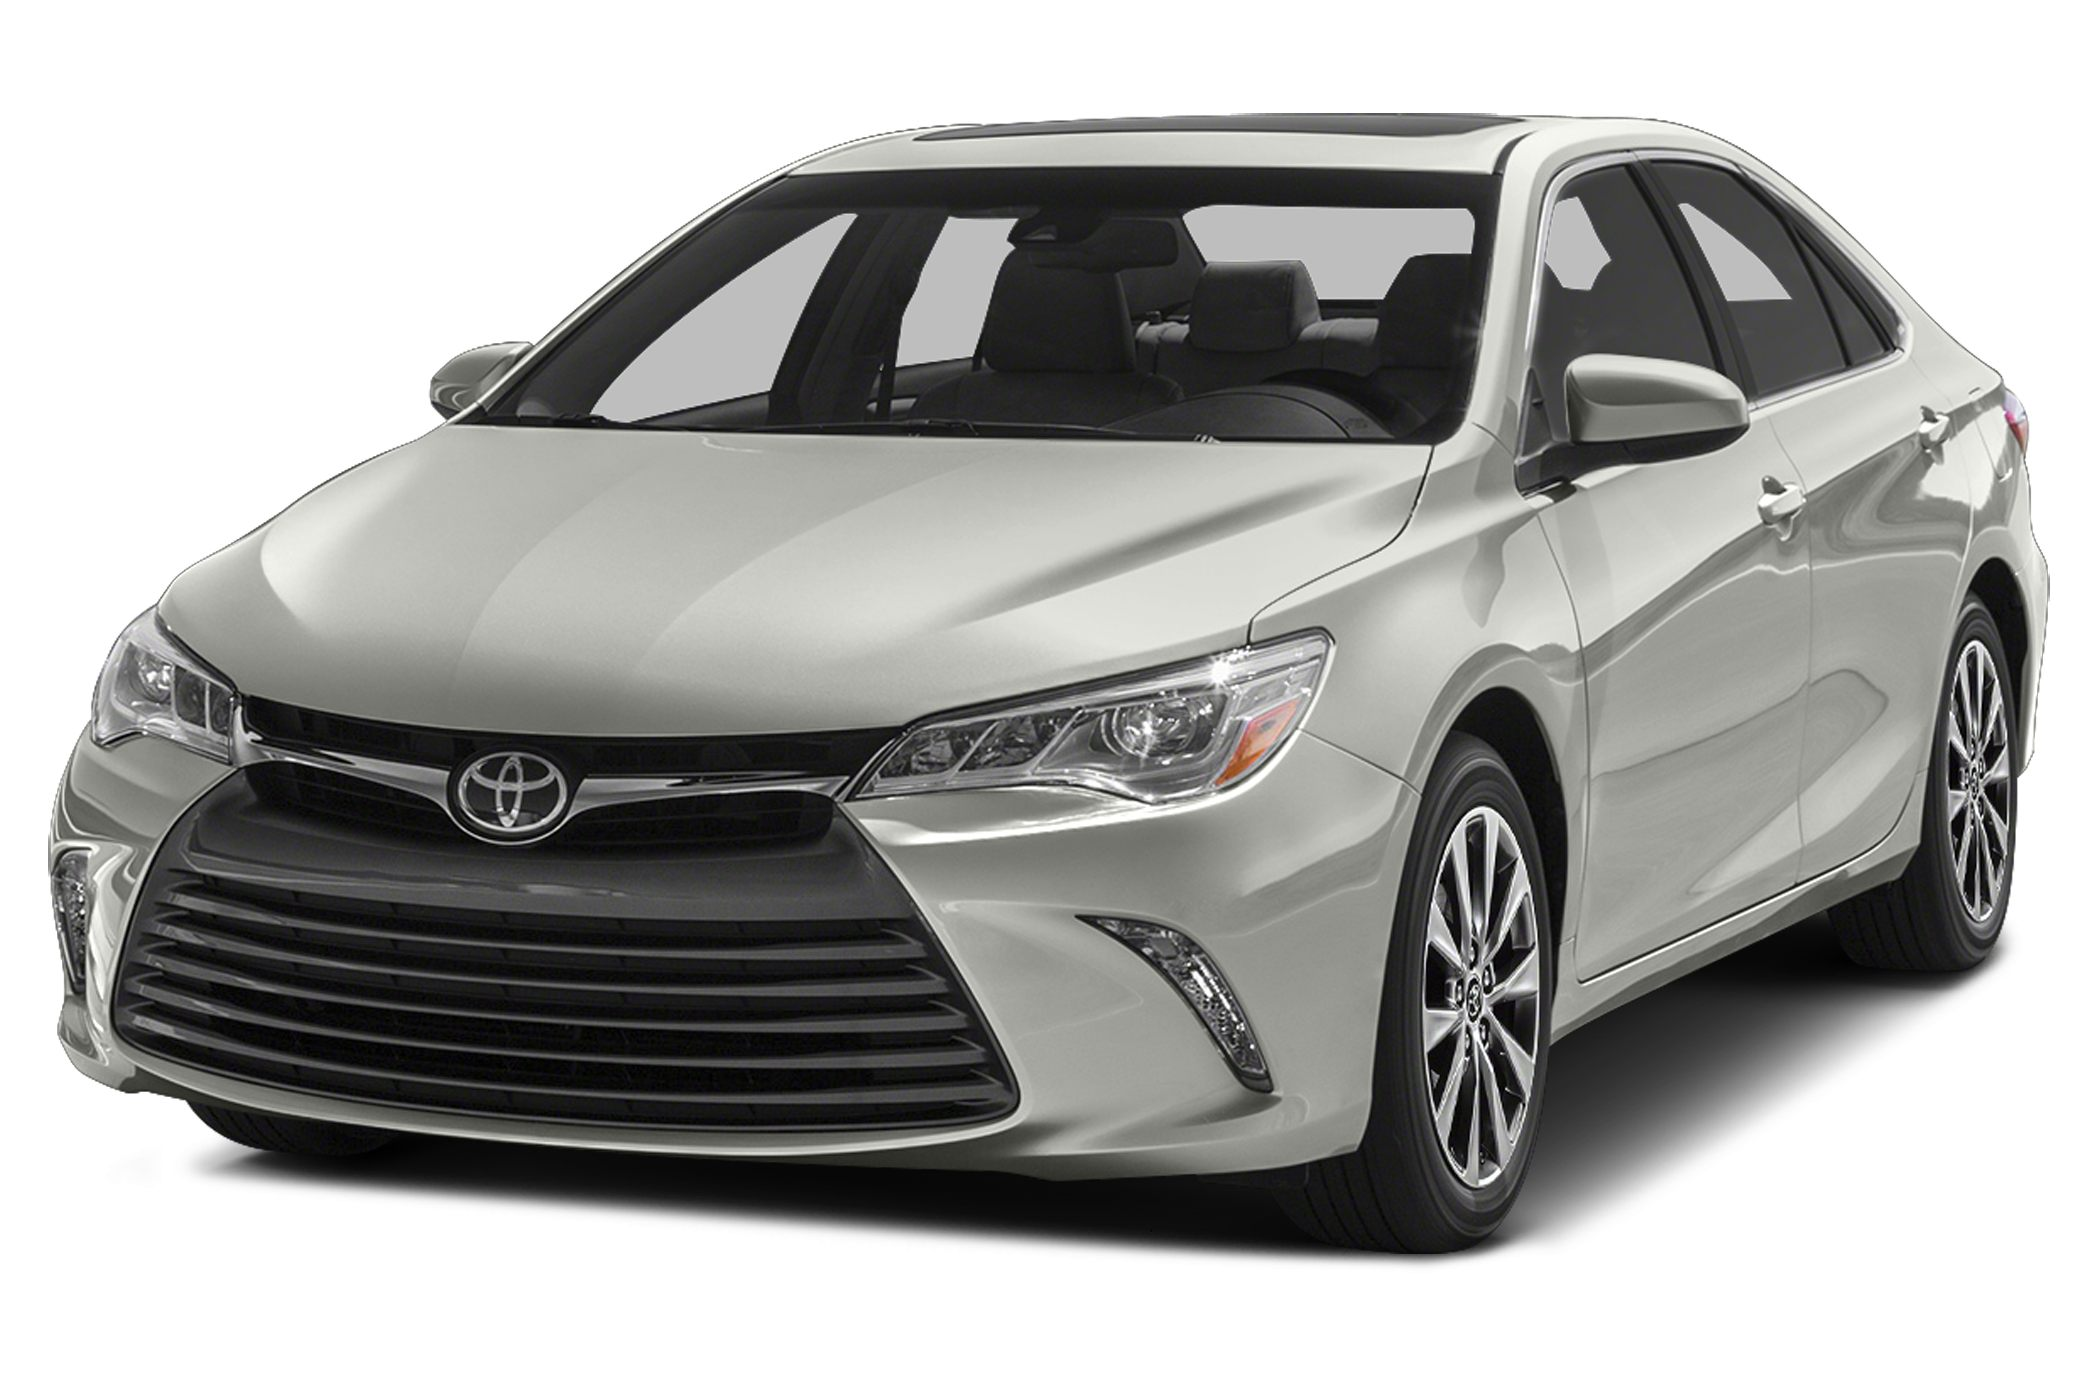 2015 Camry Colors >> See 2015 Toyota Camry Color Options Carsdirect